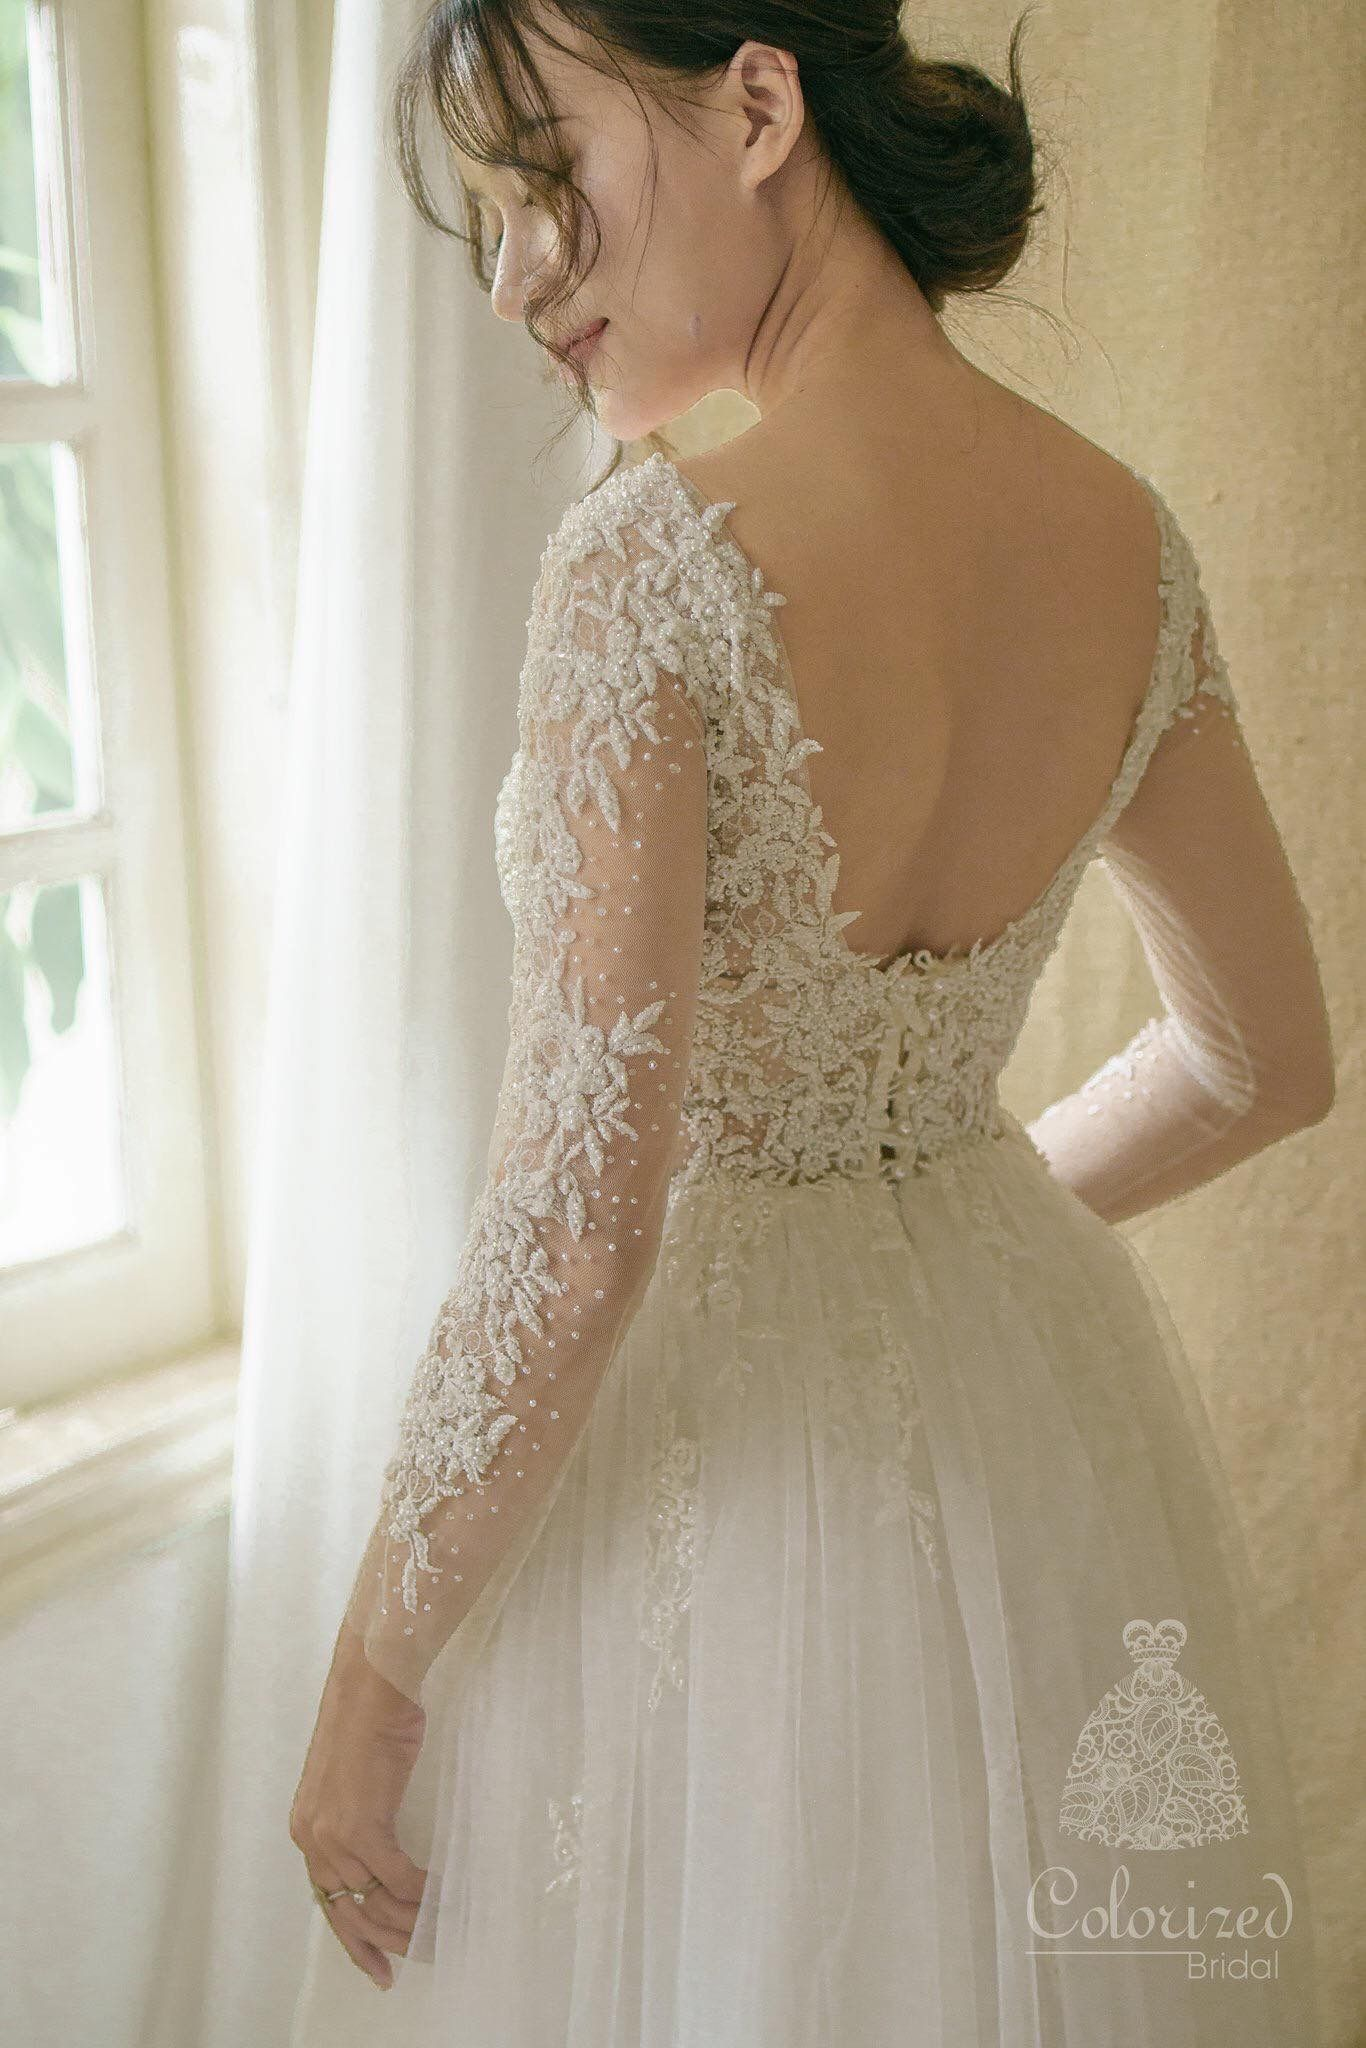 Flowery Lace Wedding Dress With Beadings Www Facebook Com Colorized Shop Dresses Wedding Dresses Lace Wedding Dresses